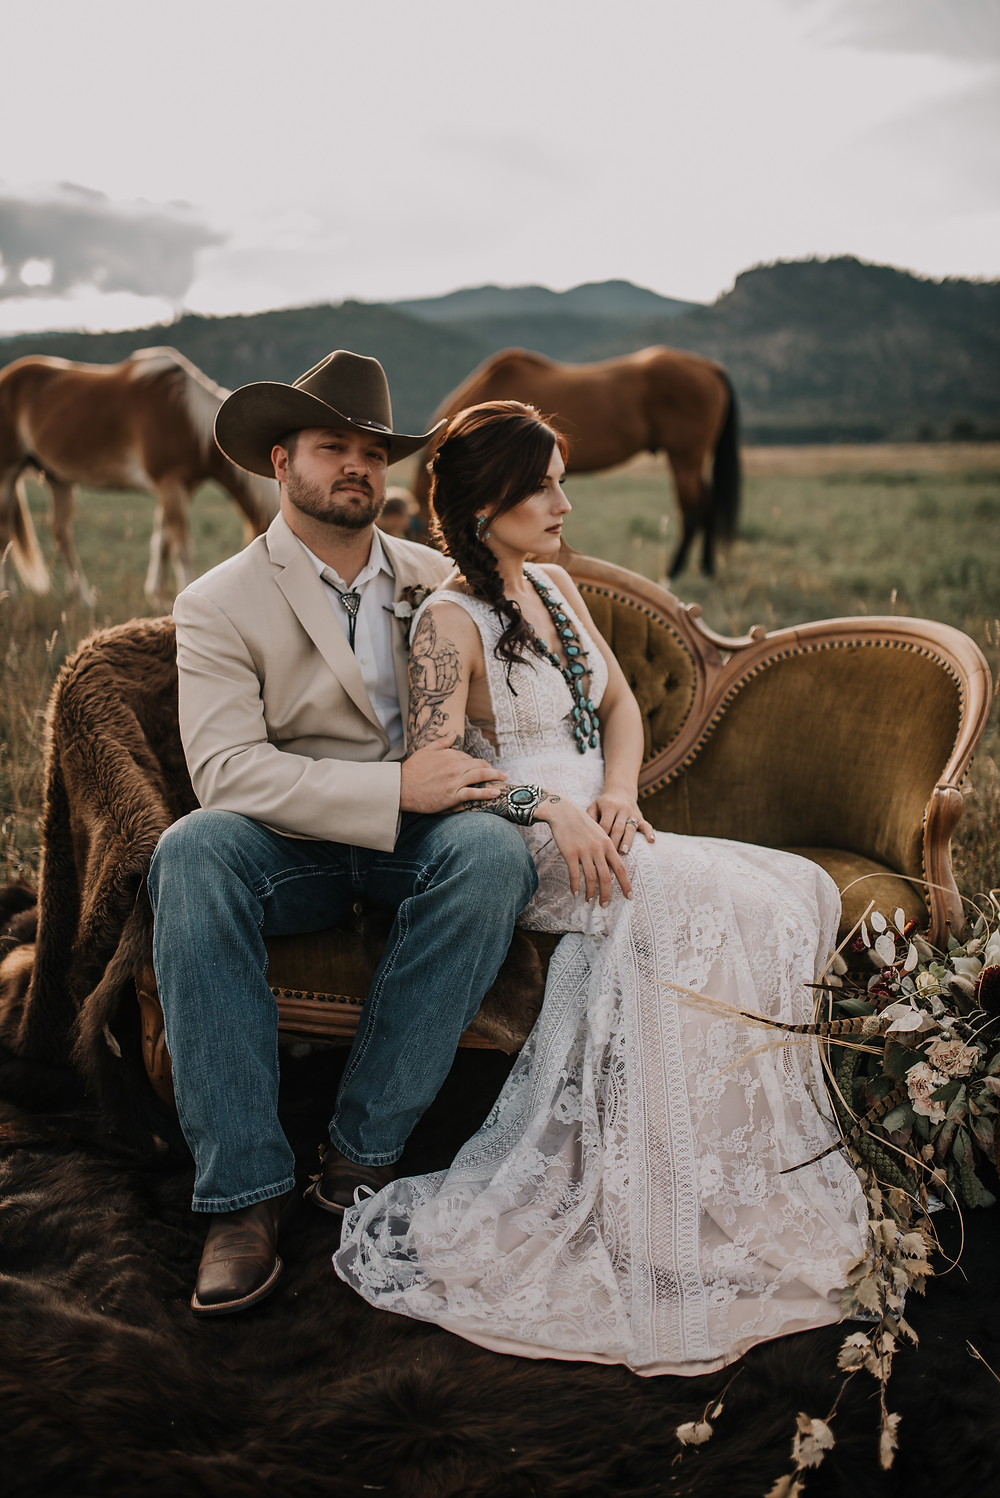 rustic bouquet, rustic wedding, Amber waves of grain, styled shoot, western plate setting, turquoise napkin ring, western wedding, montana wedding, missoula photographer, montana wedding photographer, turquoise, lace boho wedding dress, rococo bridal